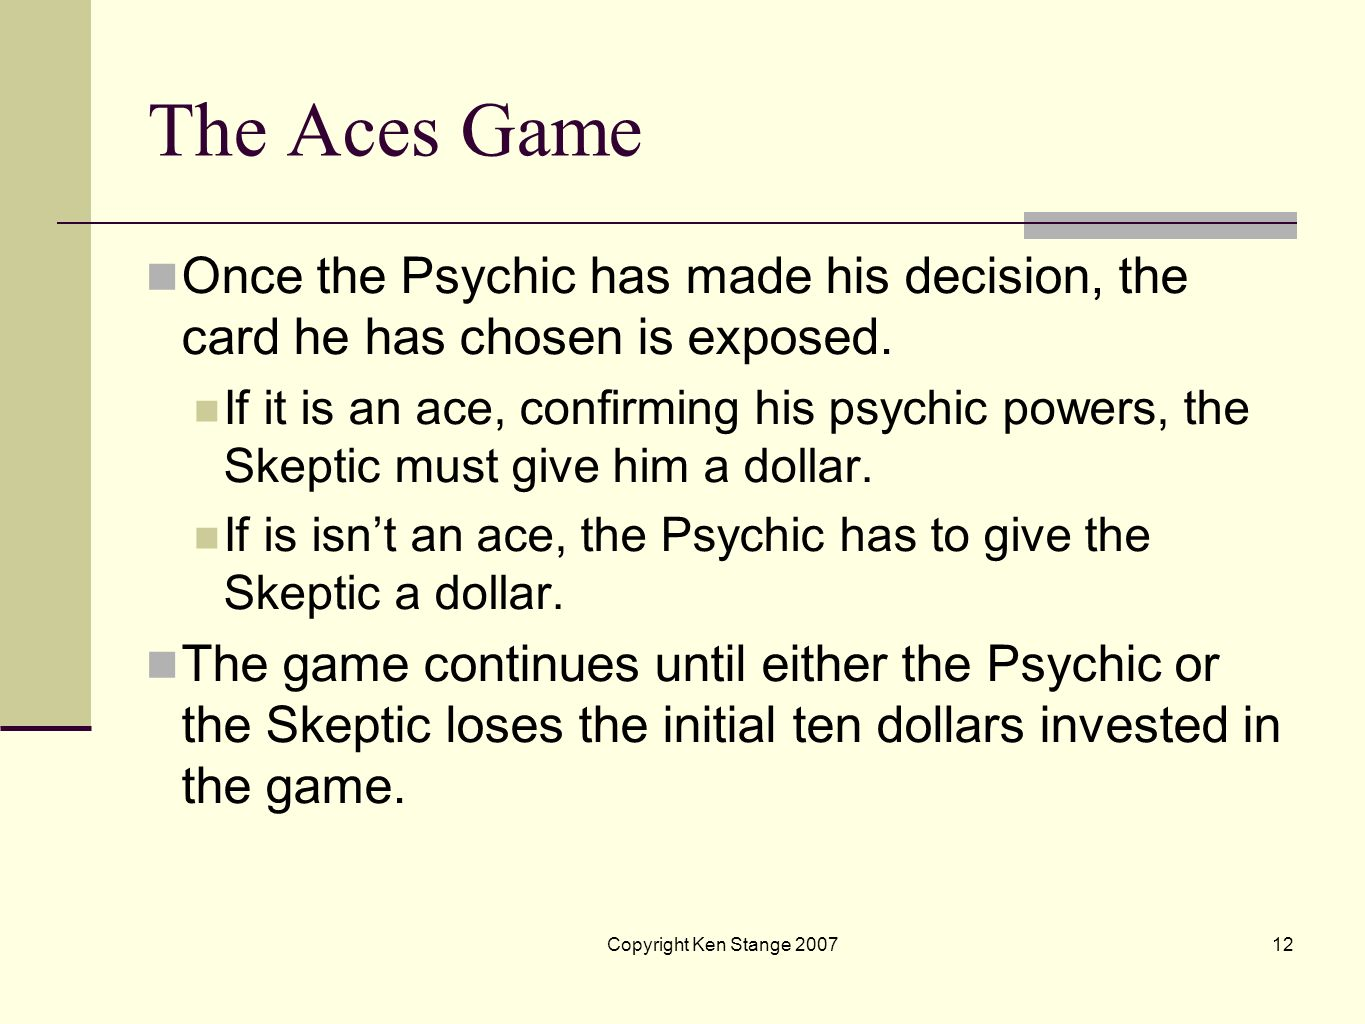 The Aces GameOnce the Psychic has made his decision, the card he has chosen is exposed.